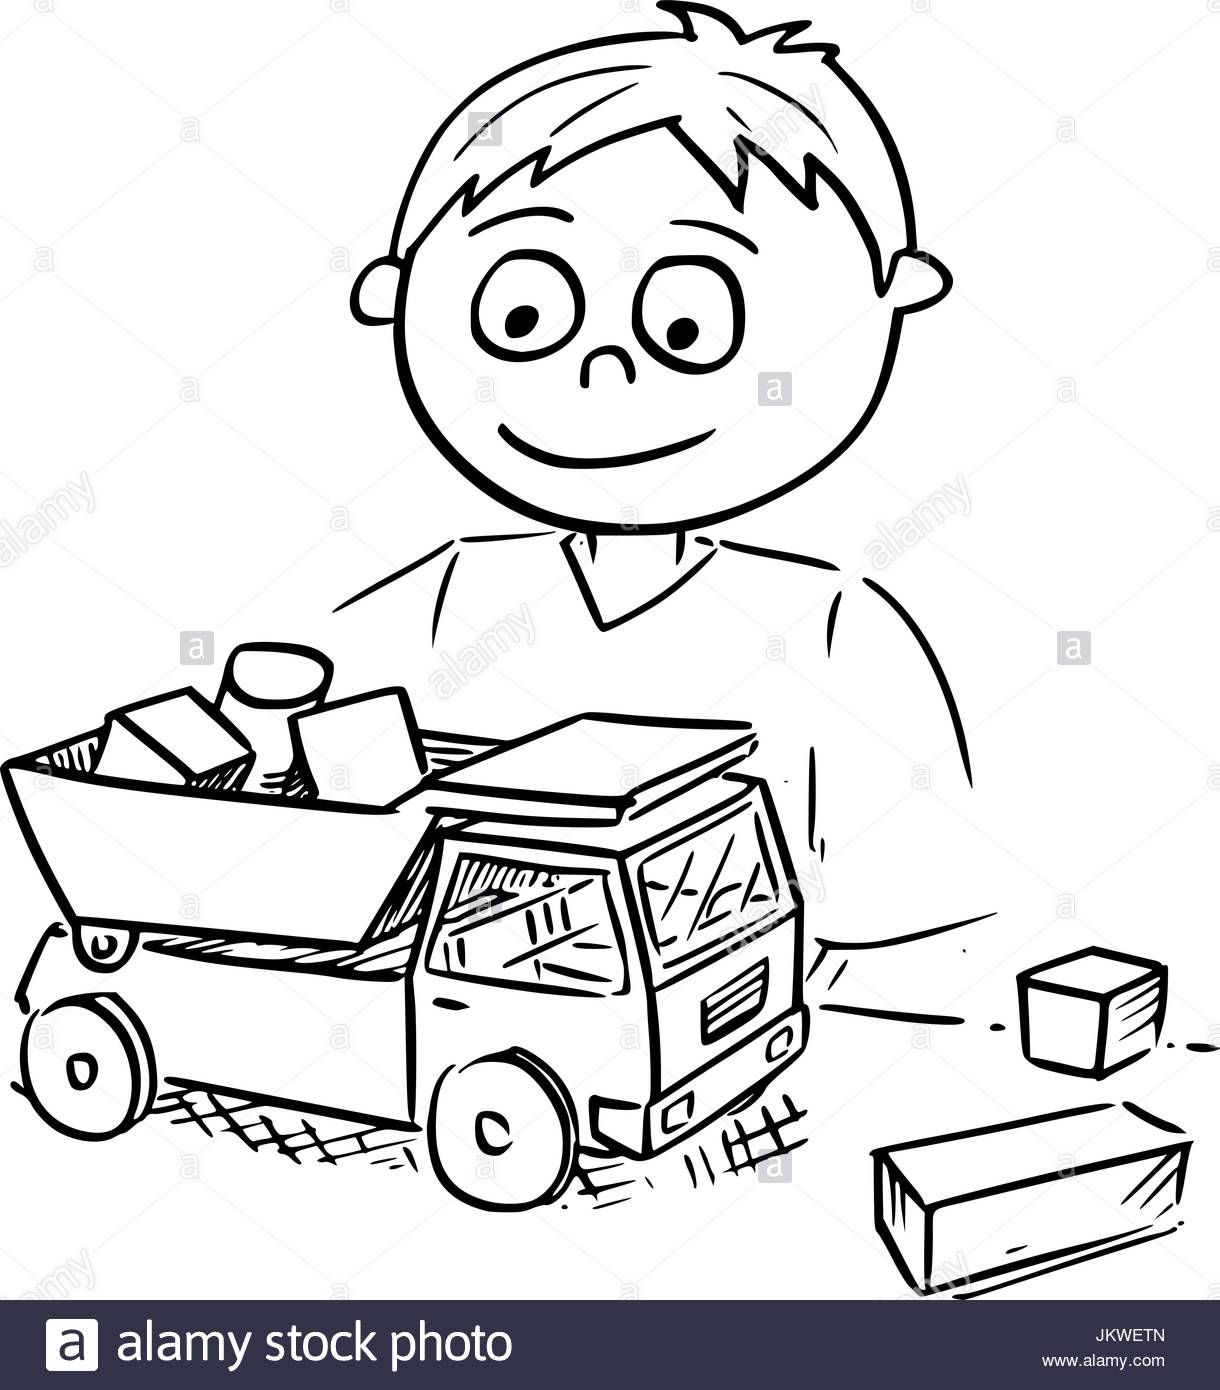 1220x1390 Hand Drawing Vector Cartoon Of A Boy Playing With Toy Truck Car